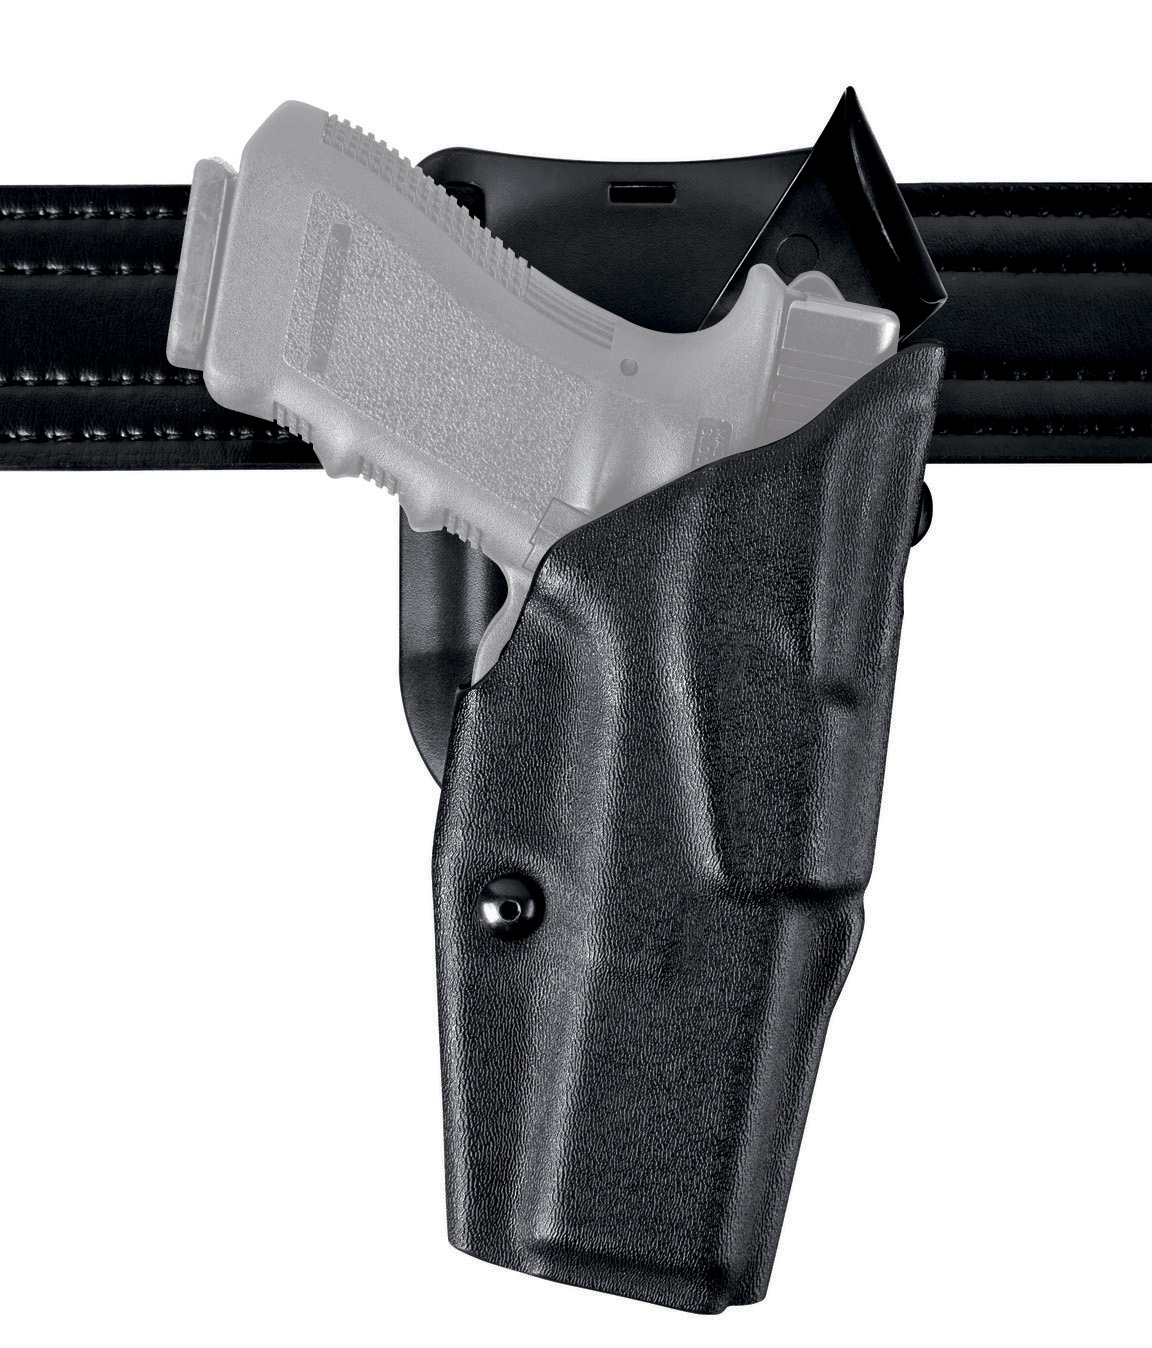 Safariland 6395 ALS Low Ride Level I Retention Duty Holster